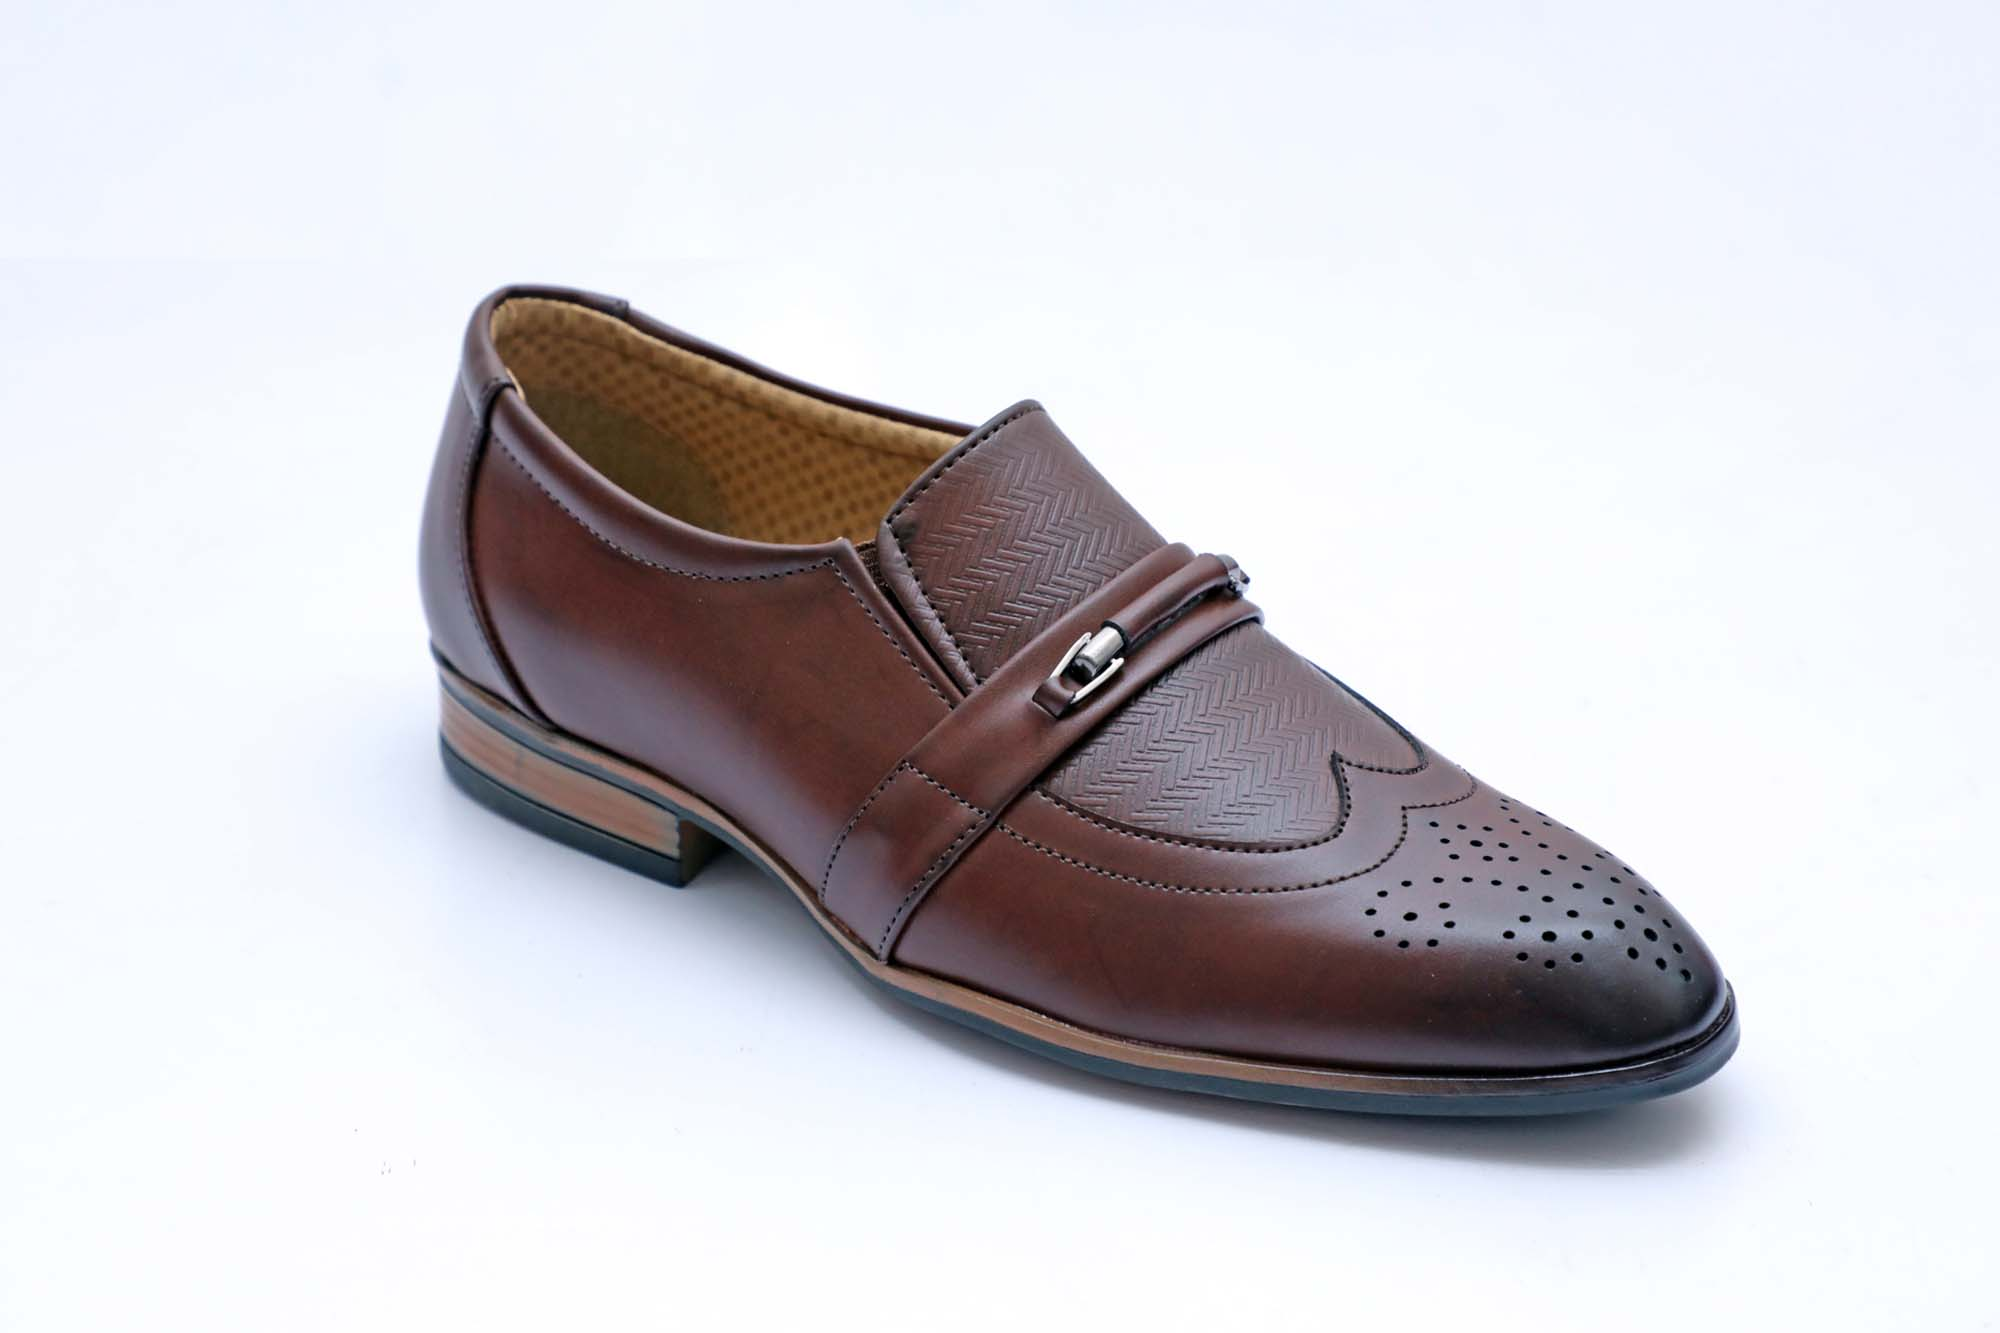 FORMAL040-BROWN MEN'S FORMAL SHOES